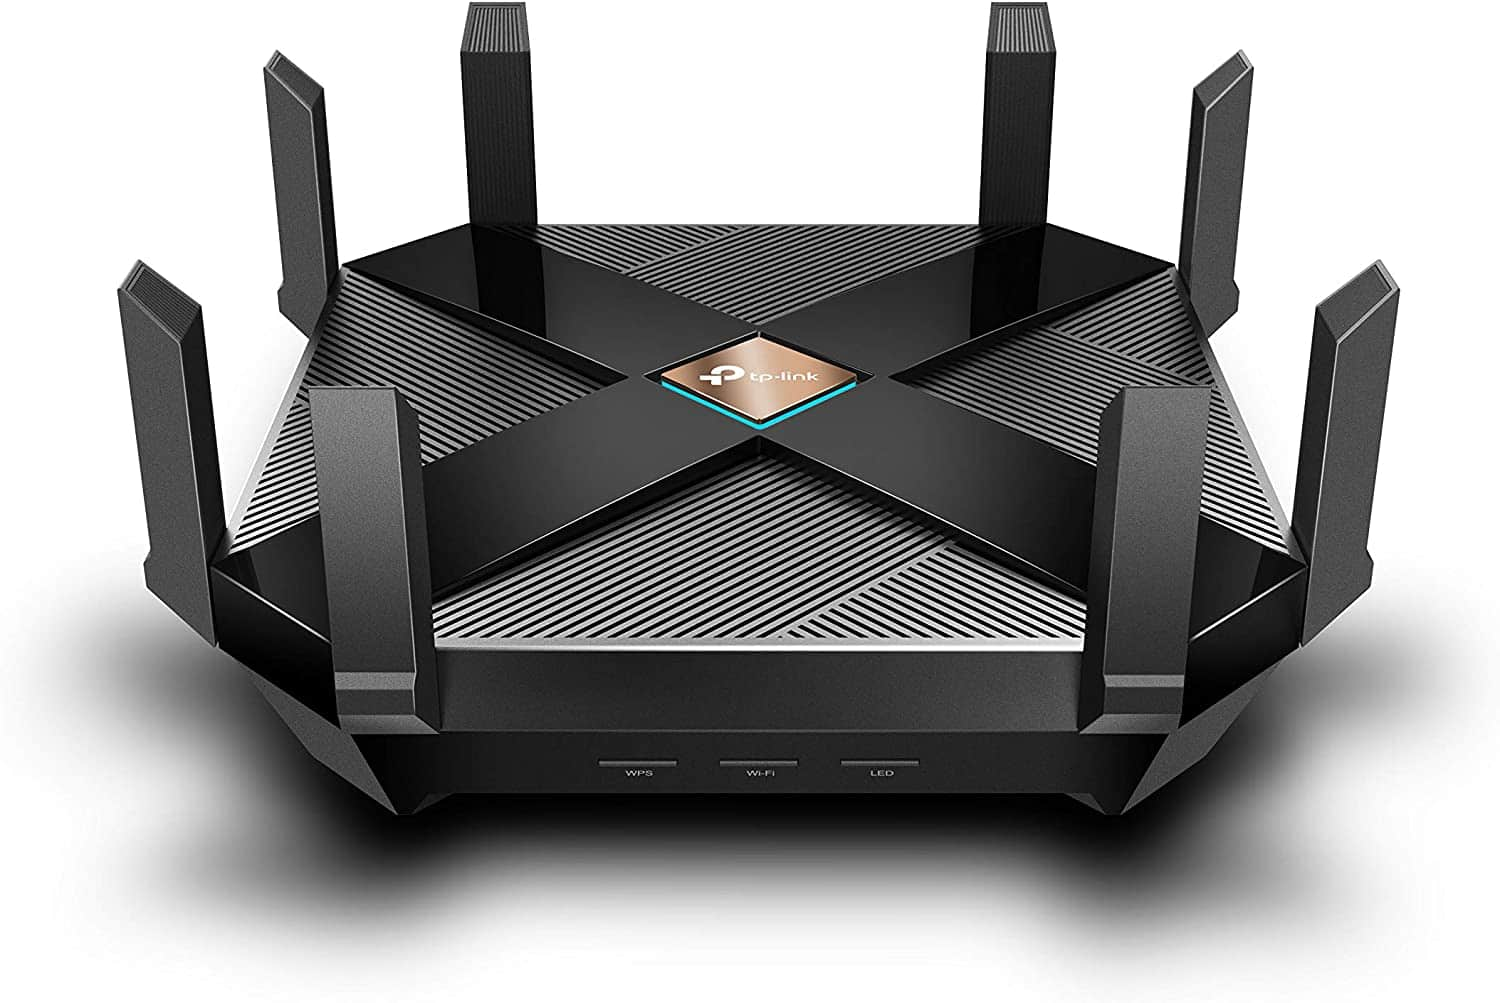 TP-Link Archer AX6000 WiFi 6 Router, 8-Stream Smart WiFi Router